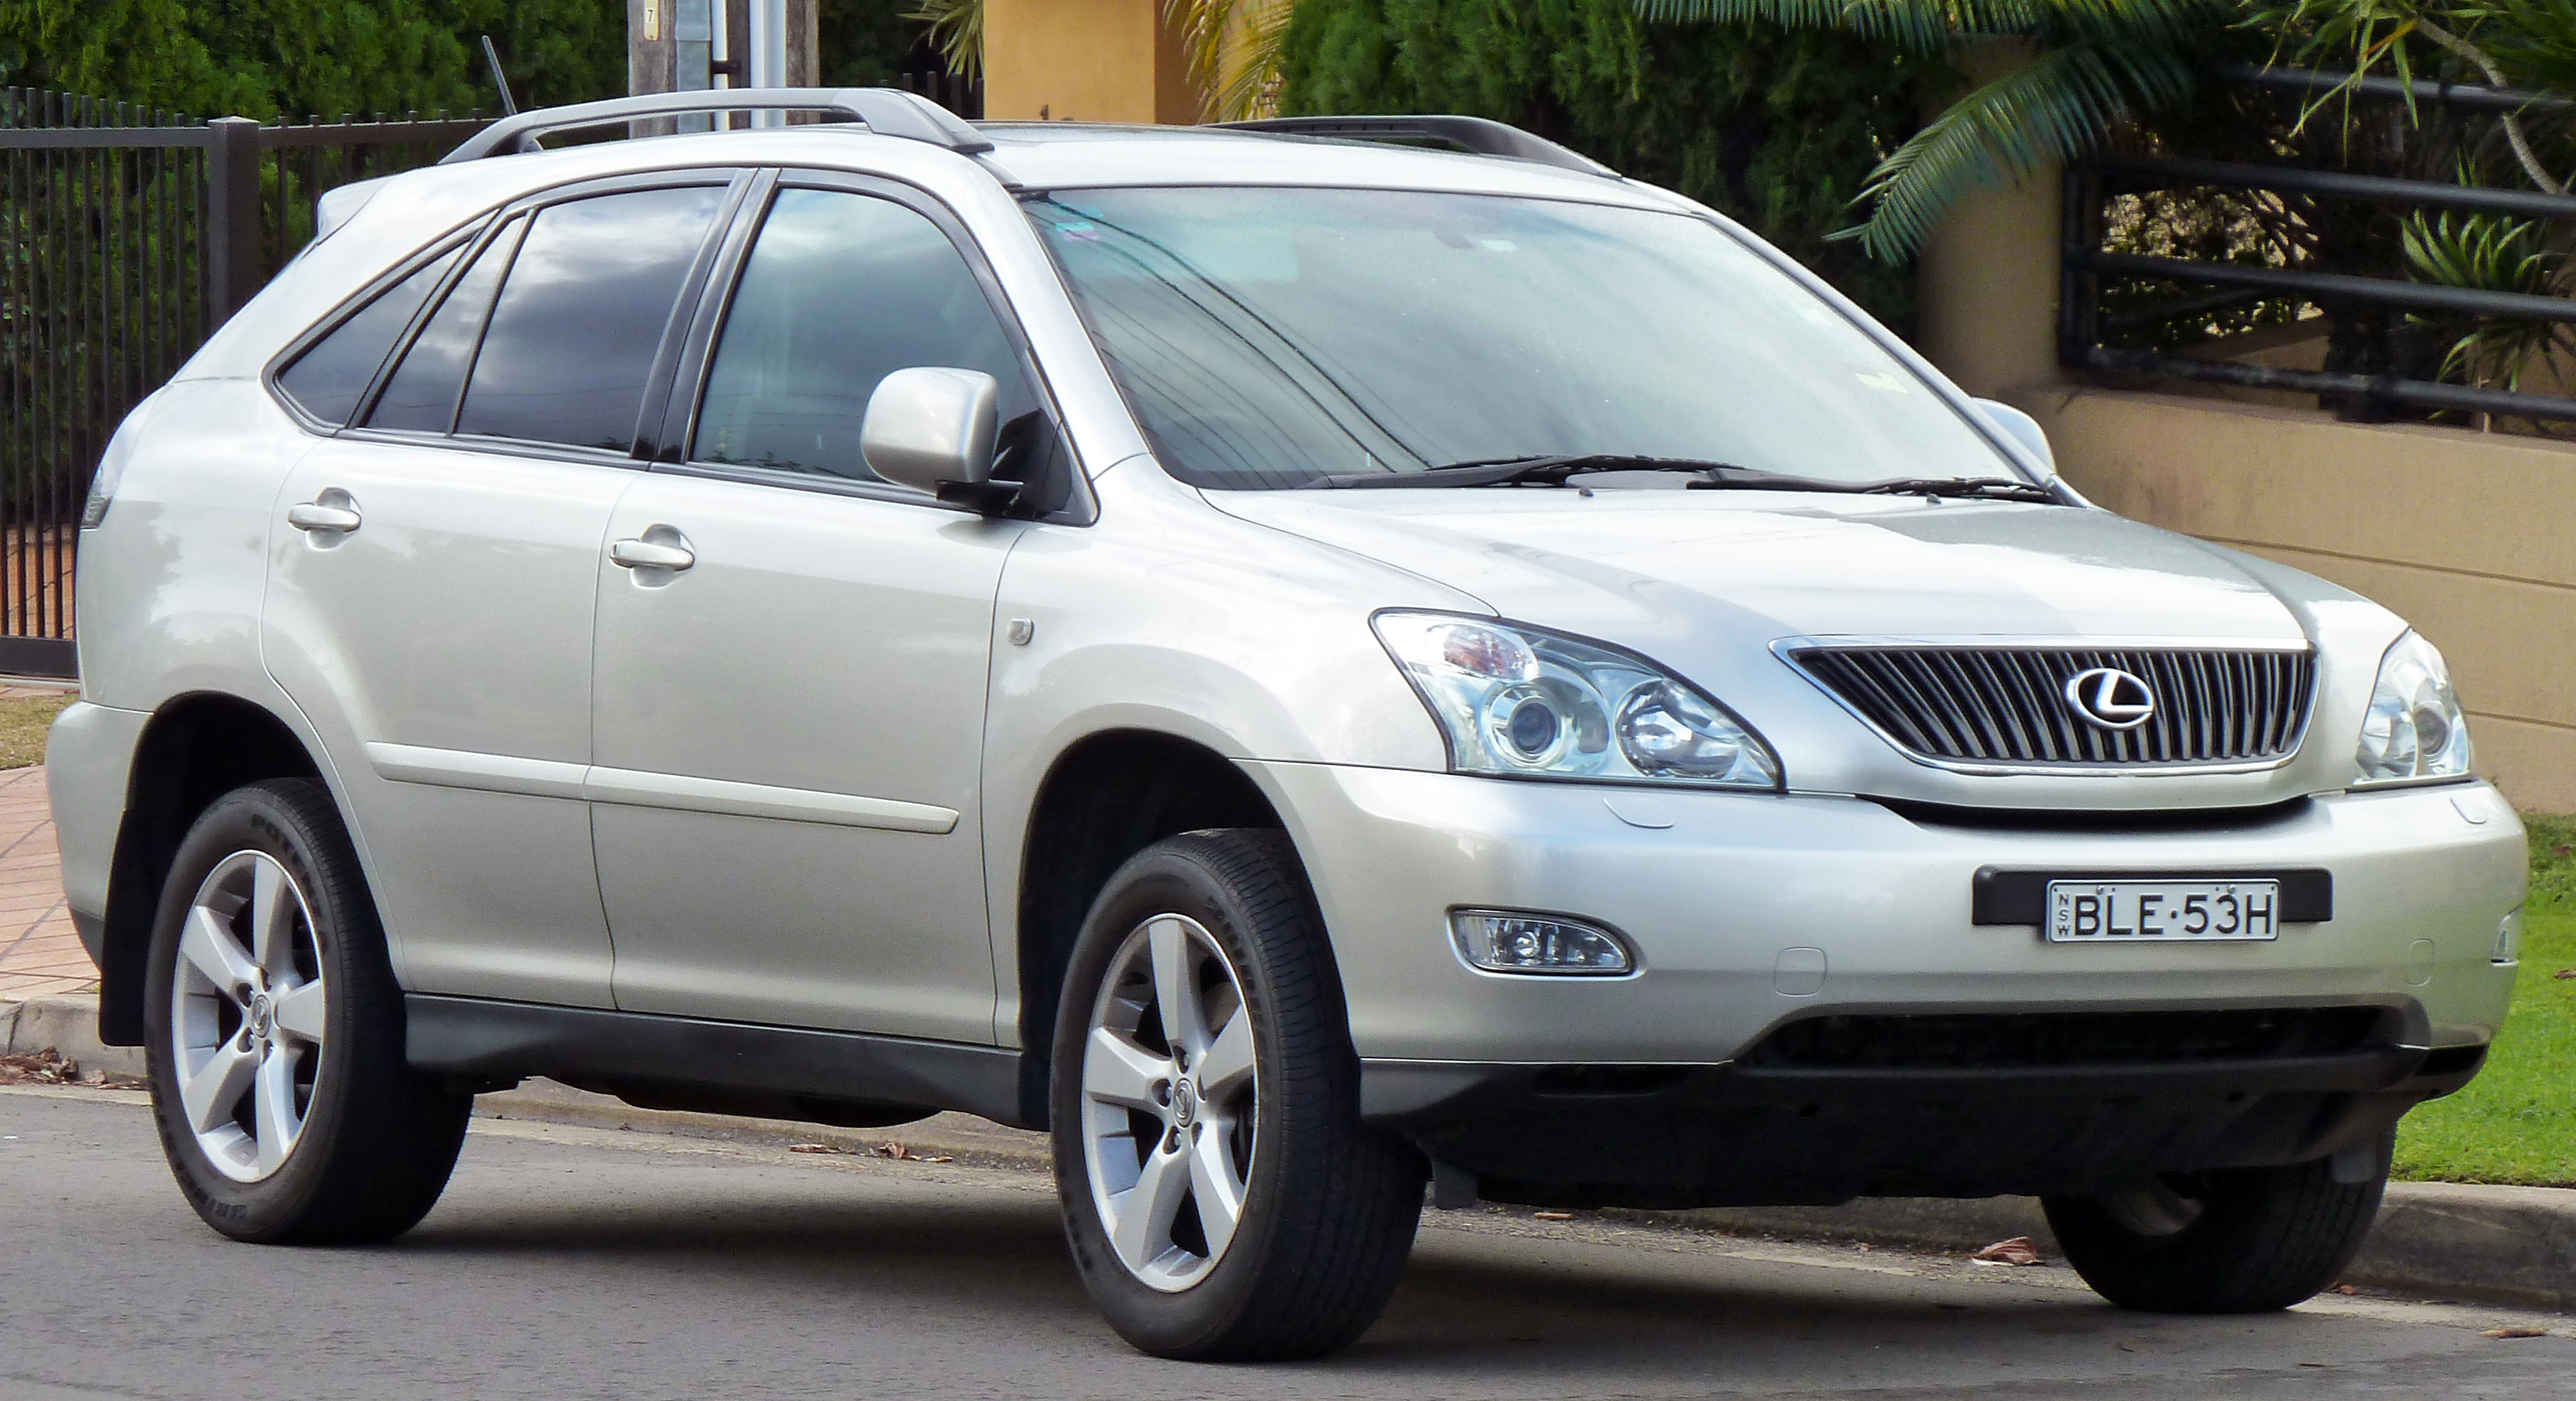 File:2004 2005 Lexus RX 330 (MCU38R) Sports Luxury Wagon 03.